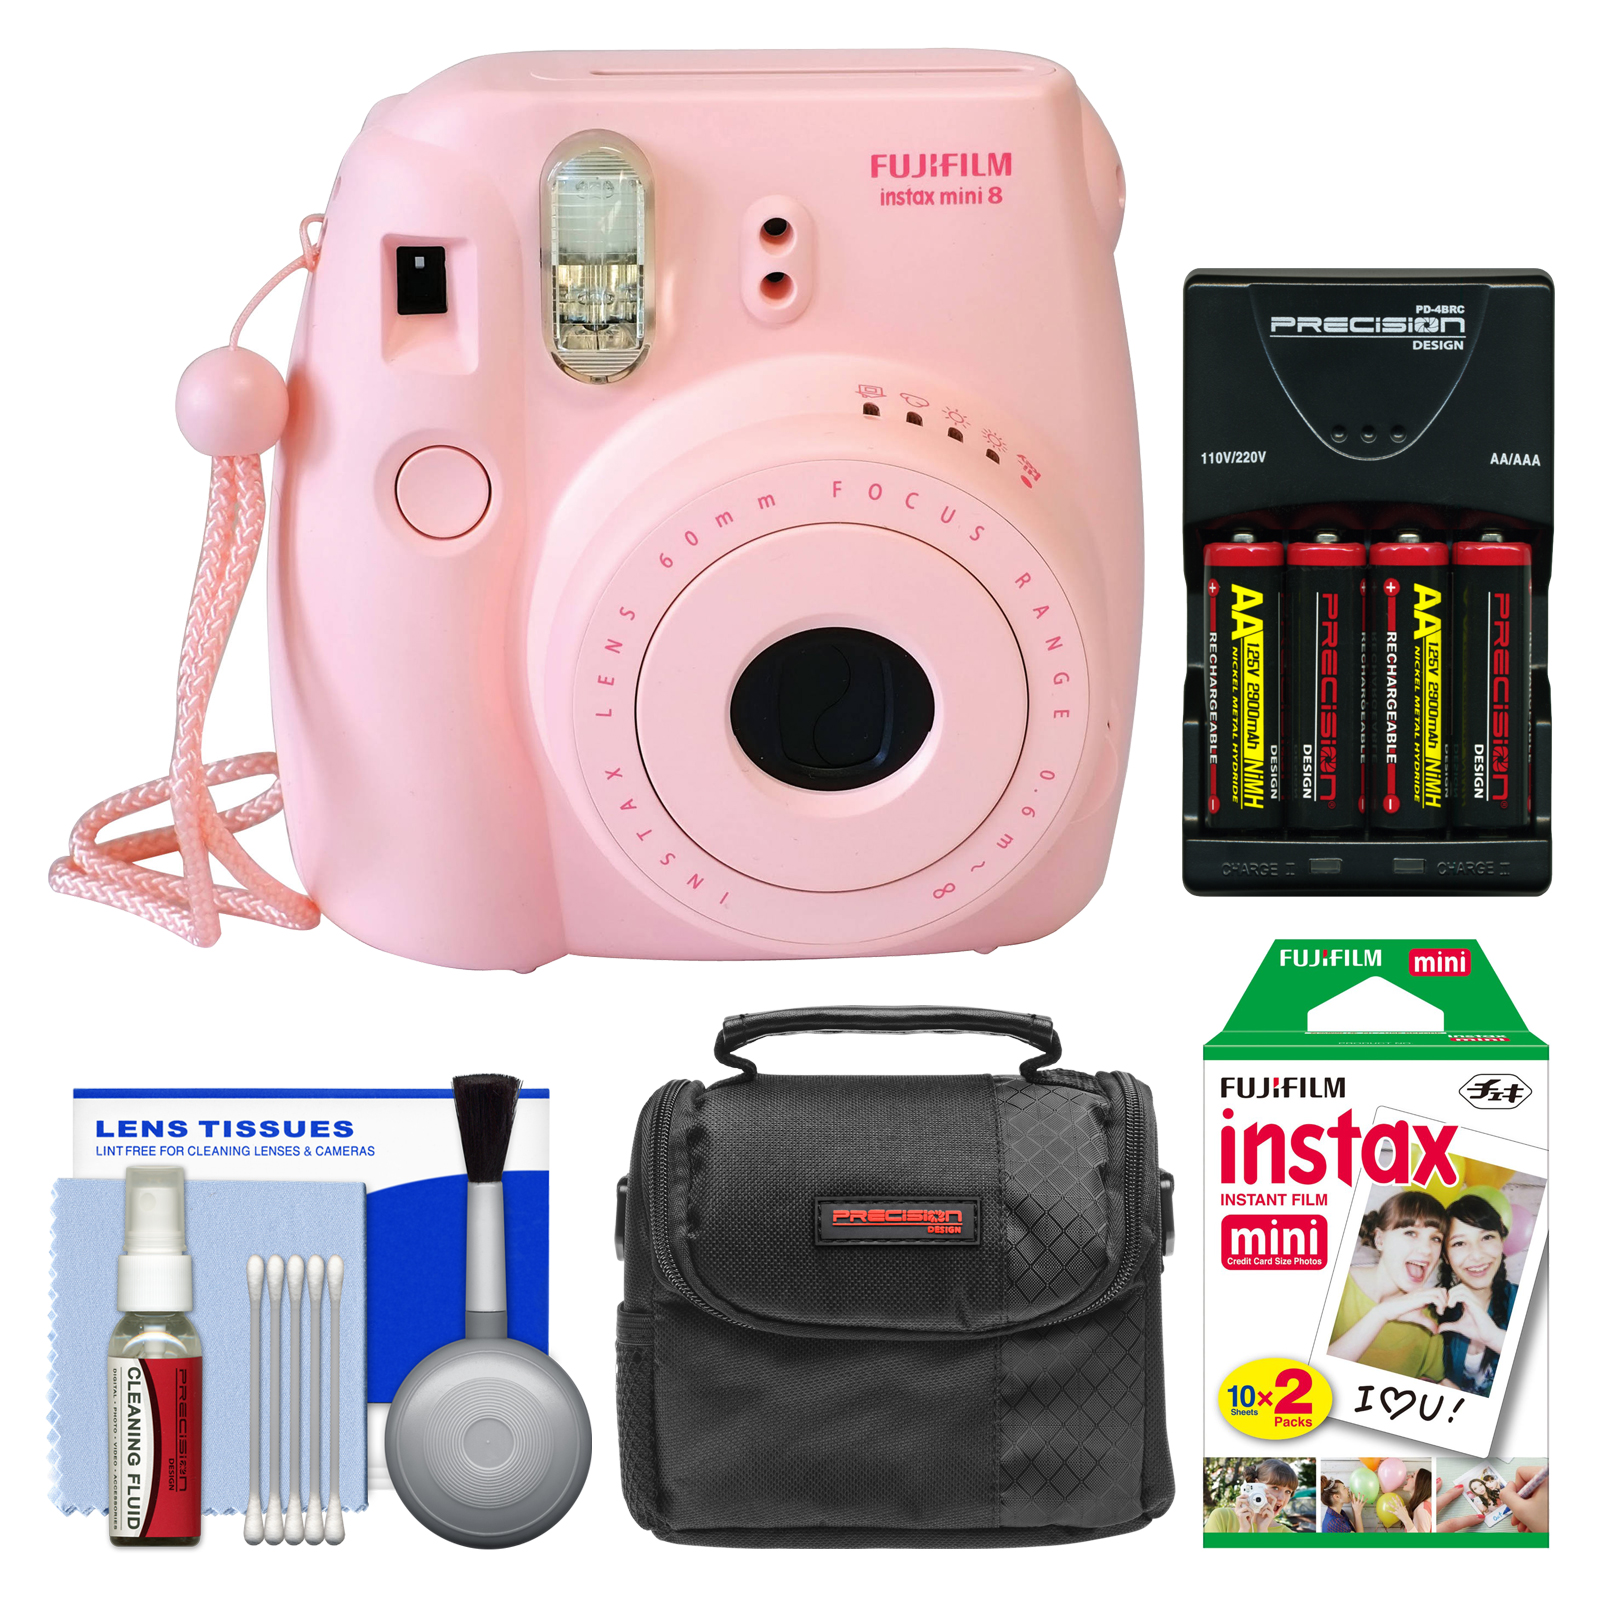 Fujifilm Instax Mini 8 Instant Film Camera (Pink) with 20 Instant Film + Case + (4) Batteries & Charger + Kit